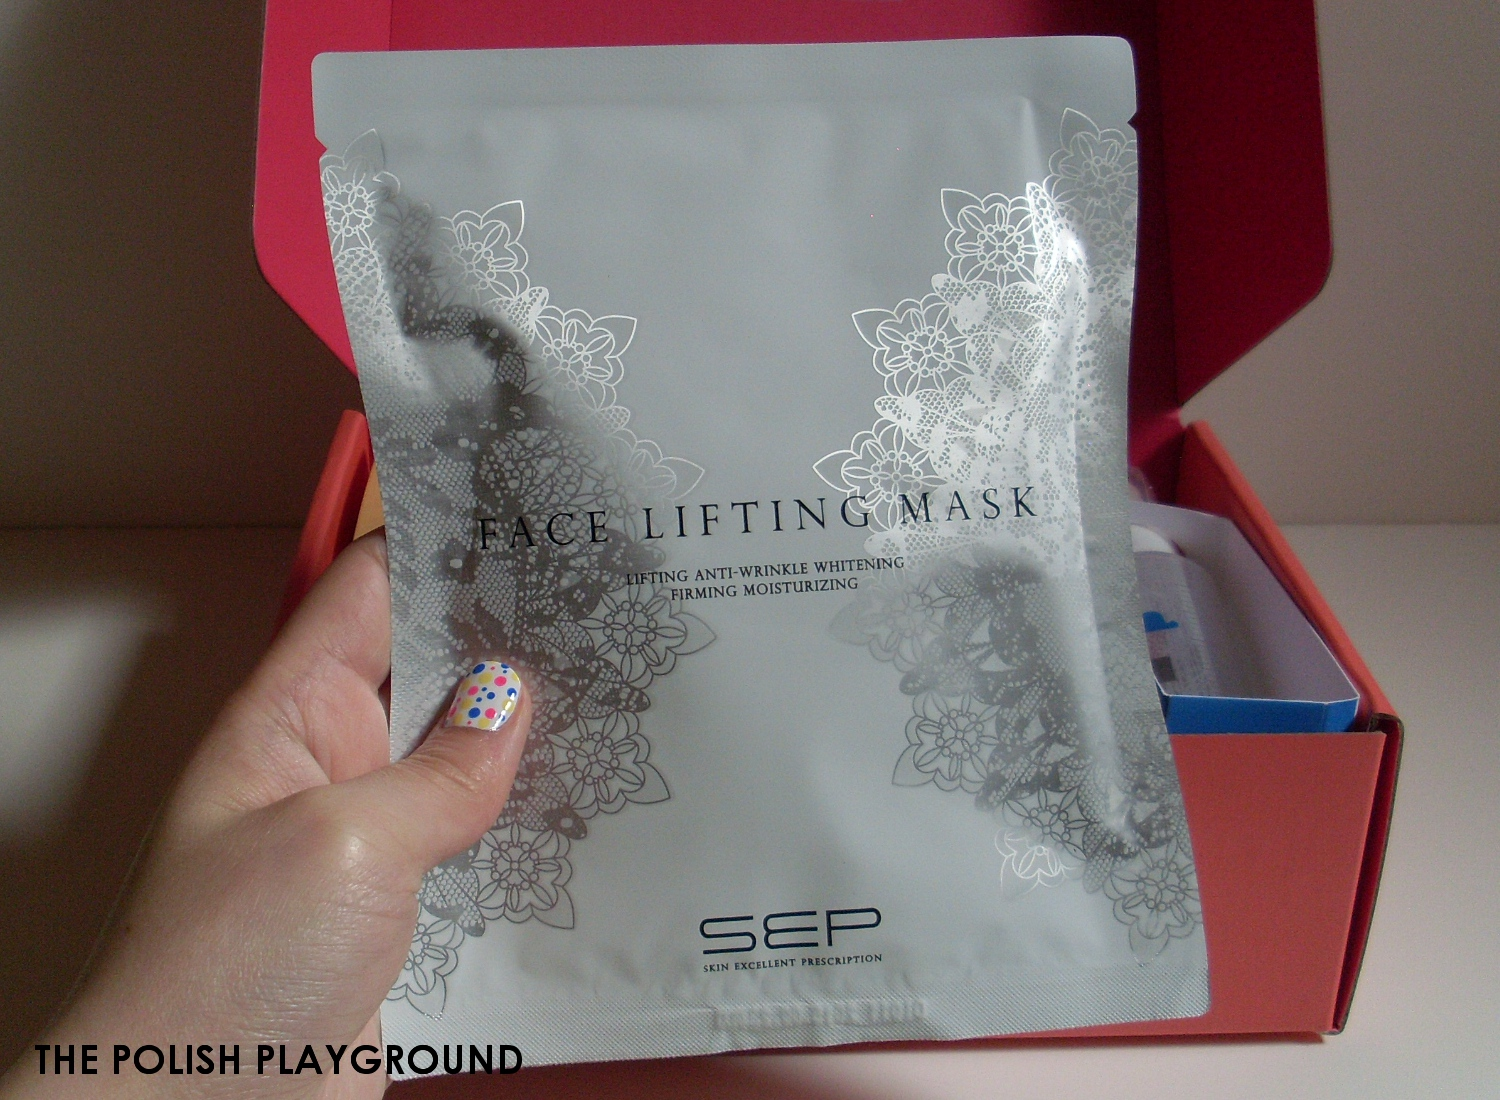 Memebox Luckybox #1 Unboxing and First Impressions - Sep Face Lifting Mask